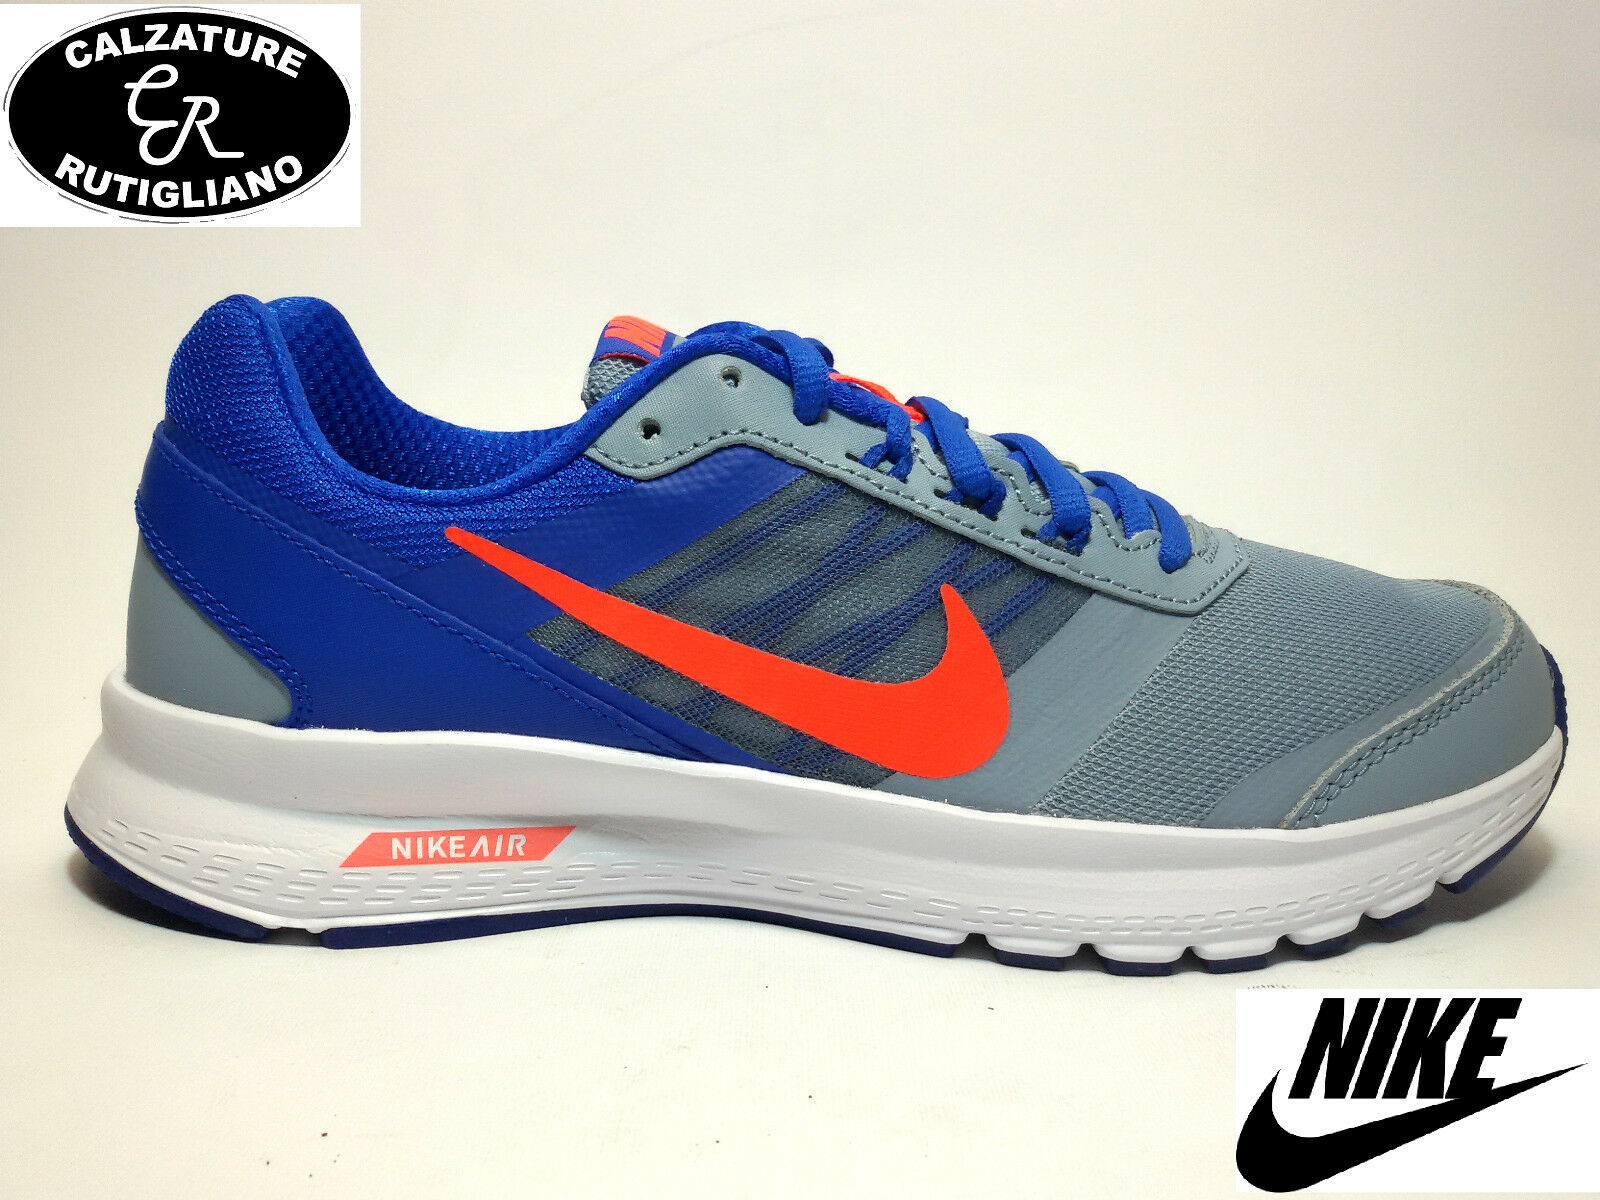 NIKE AIR RELENTLESS 5 zapatos hombres GINNASTICA RUNNING FITNESS PALESTRA 807092 401